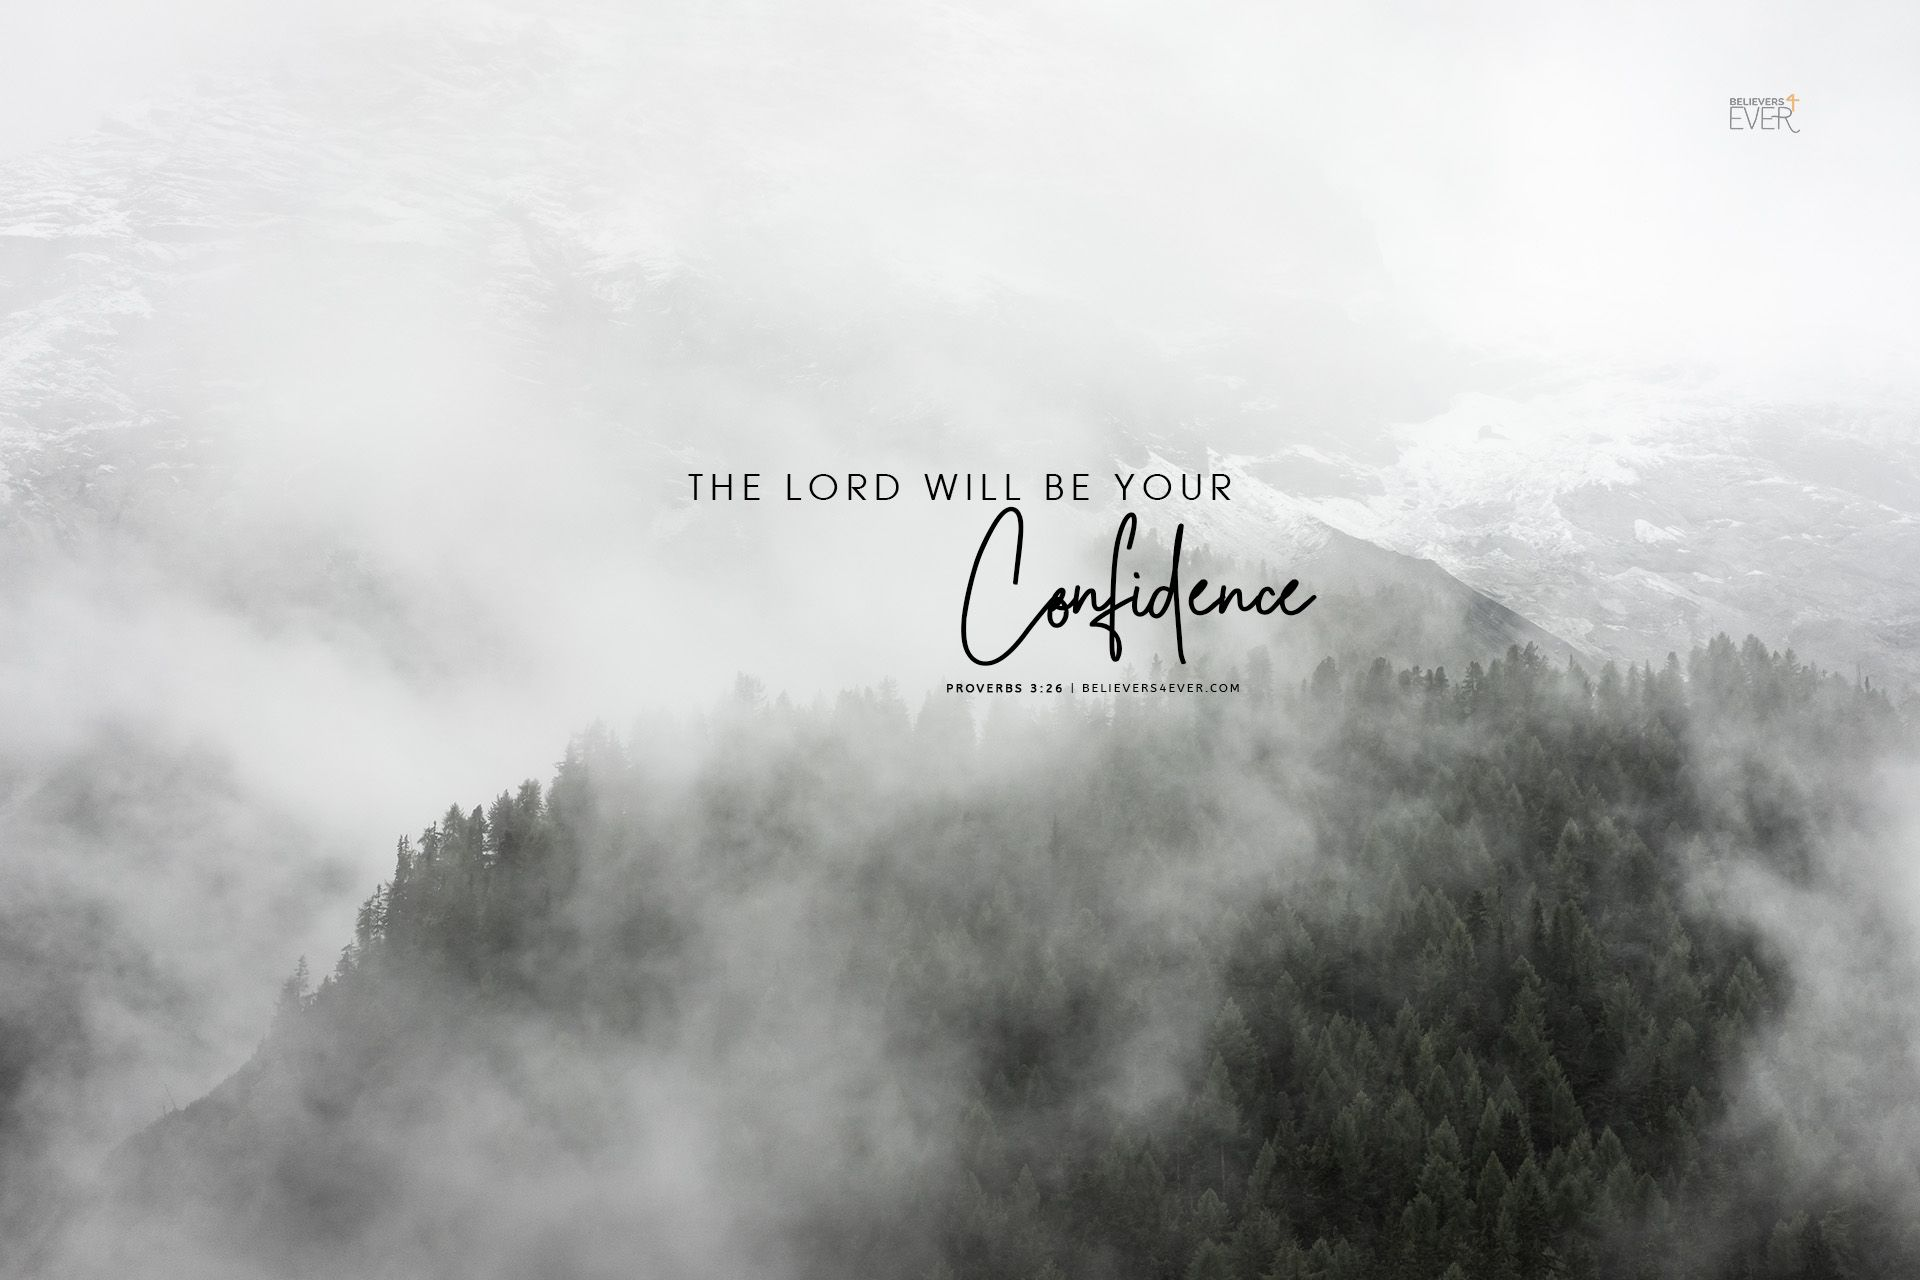 The Lord Will Be Your Confidence Believers4ever Com In 2020 Bible Verse Desktop Wallpaper Jesus Wallpaper Bible Quotes Wallpaper